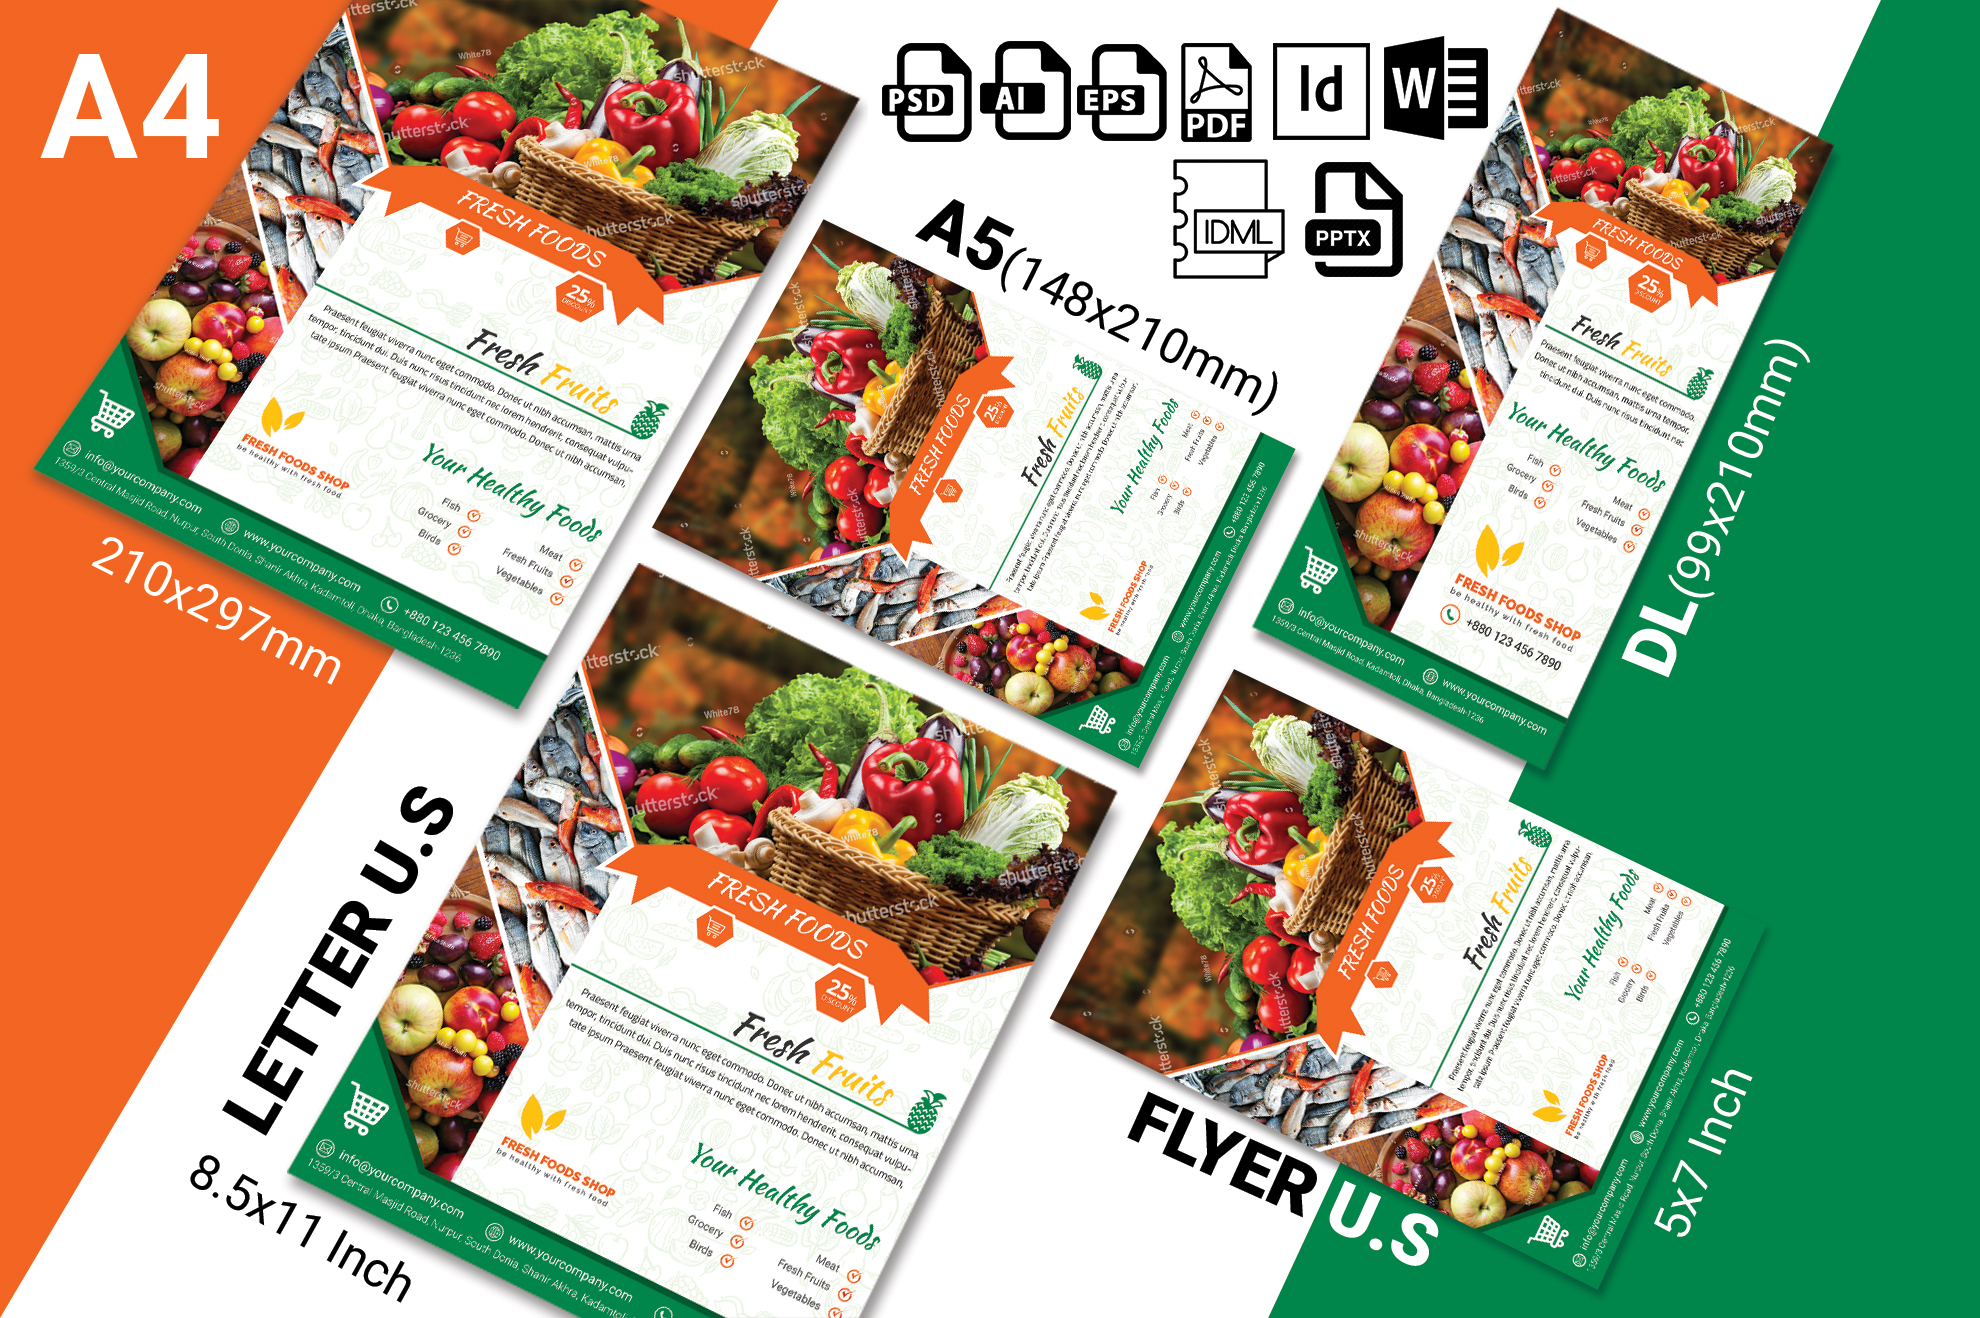 Fresh Food Grocery Shop Flyer Vol-03 example image 2